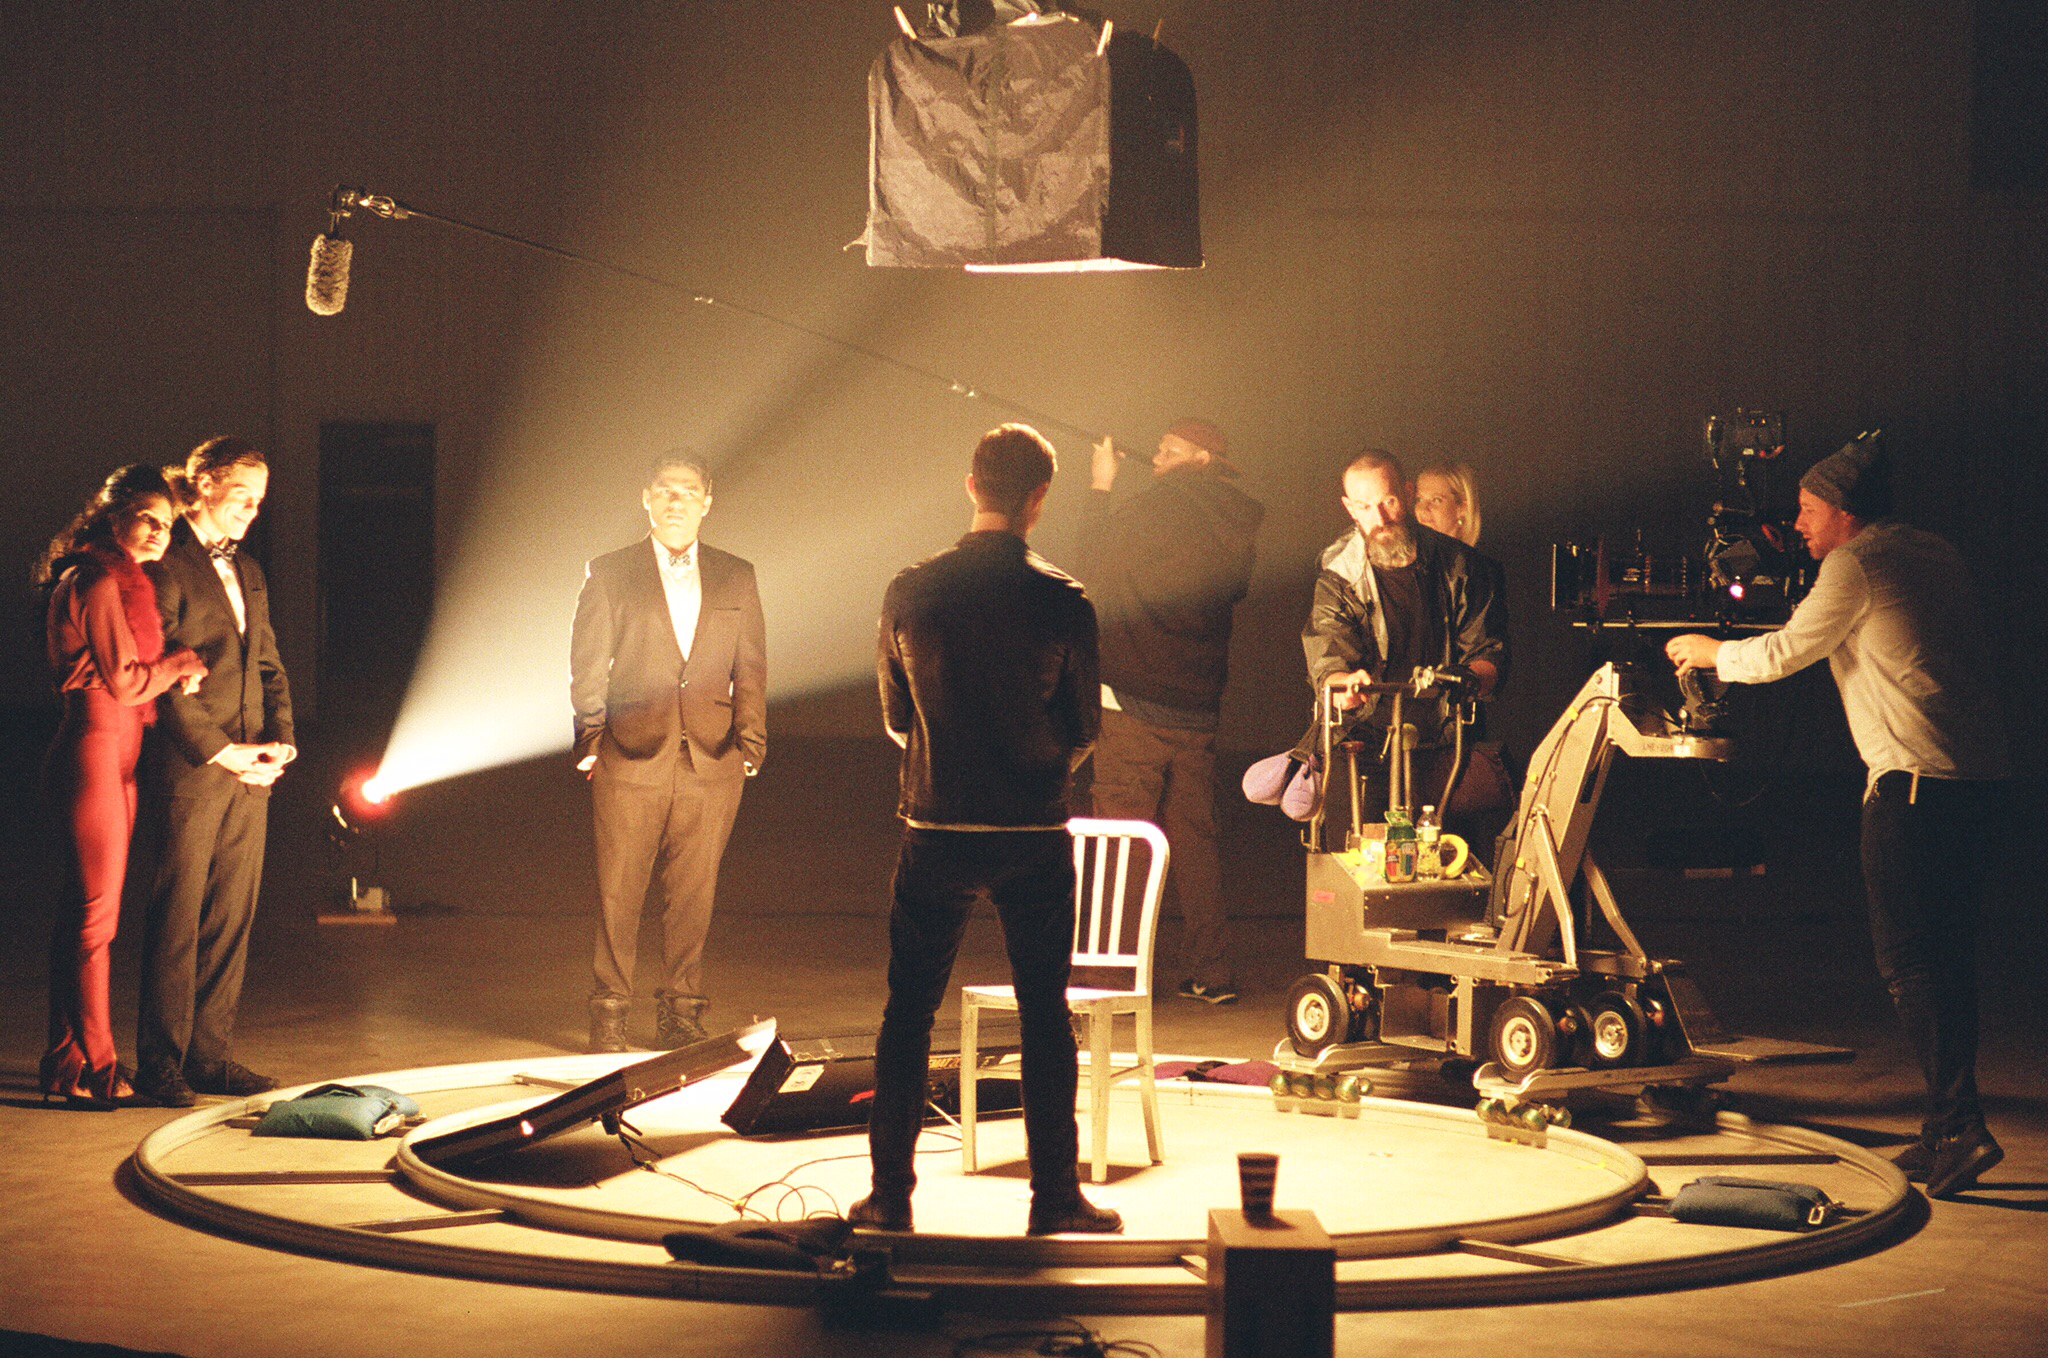 On the set of  Spy Intervention , filming the 'intervention' scene